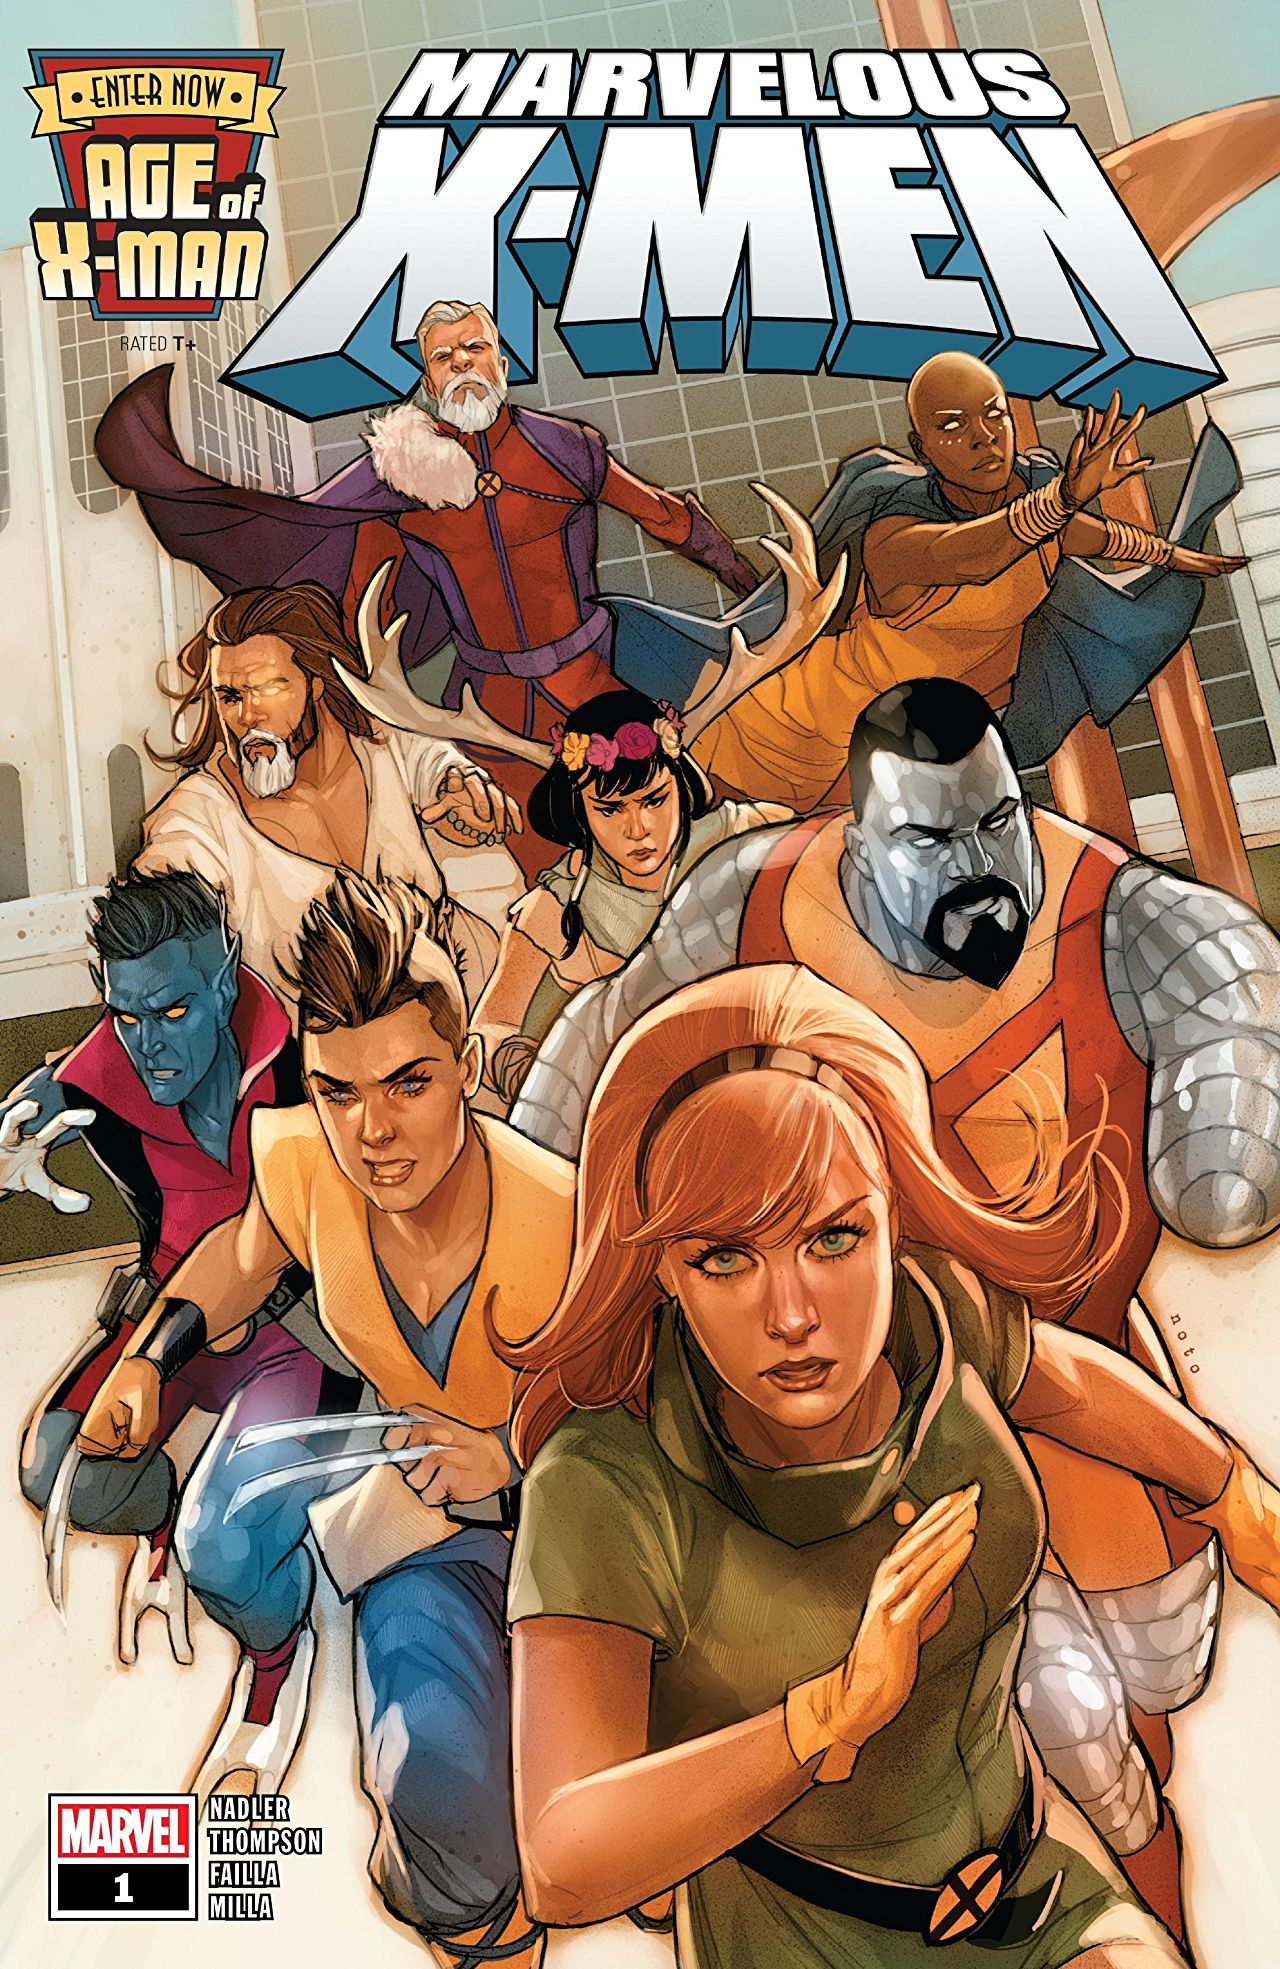 Age of X-Man: The Marvelous X-Men Vol 1 1